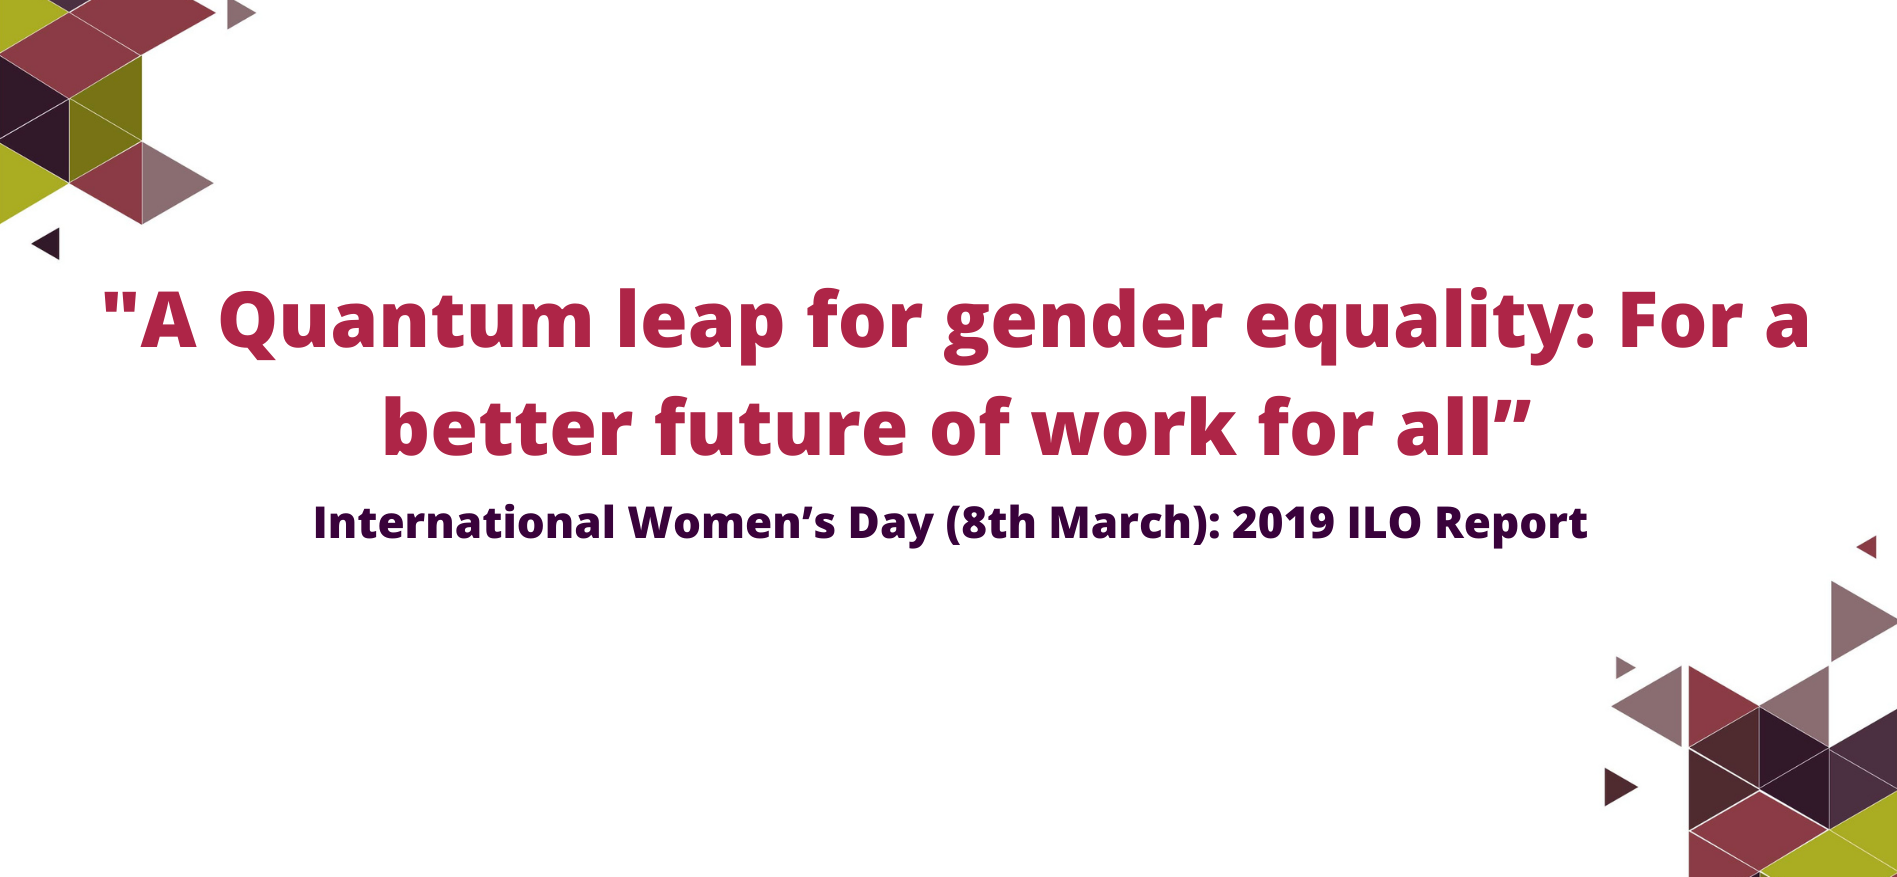 A Quantum leap for gender equality  For a better future of work for all